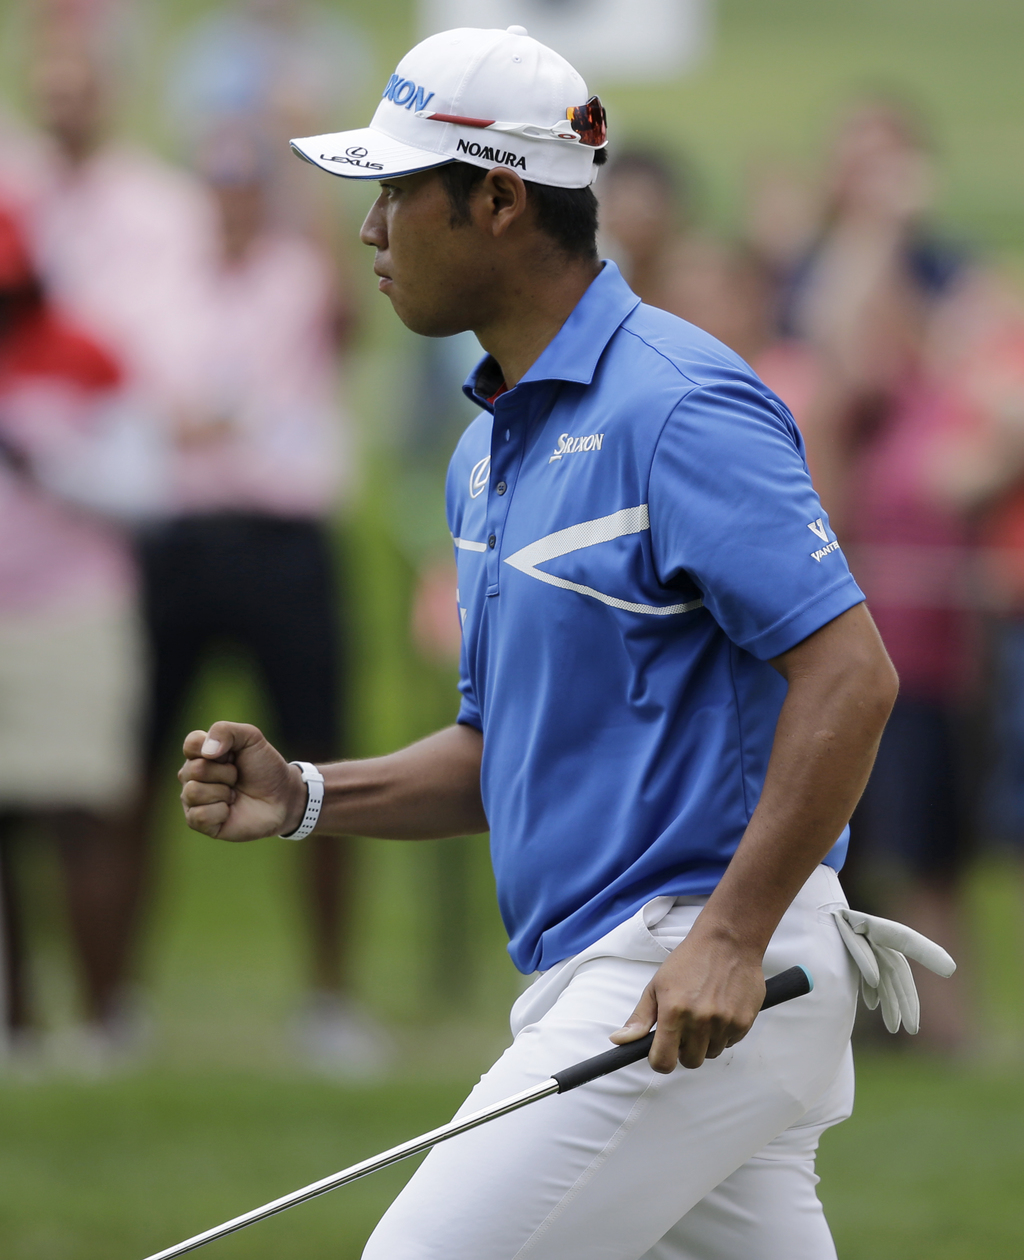 Hideki Matsuyama, from Japan, pumps his fist after making a birdie on the eighth hole during the second round of the Bridgestone Invitational golf tou...